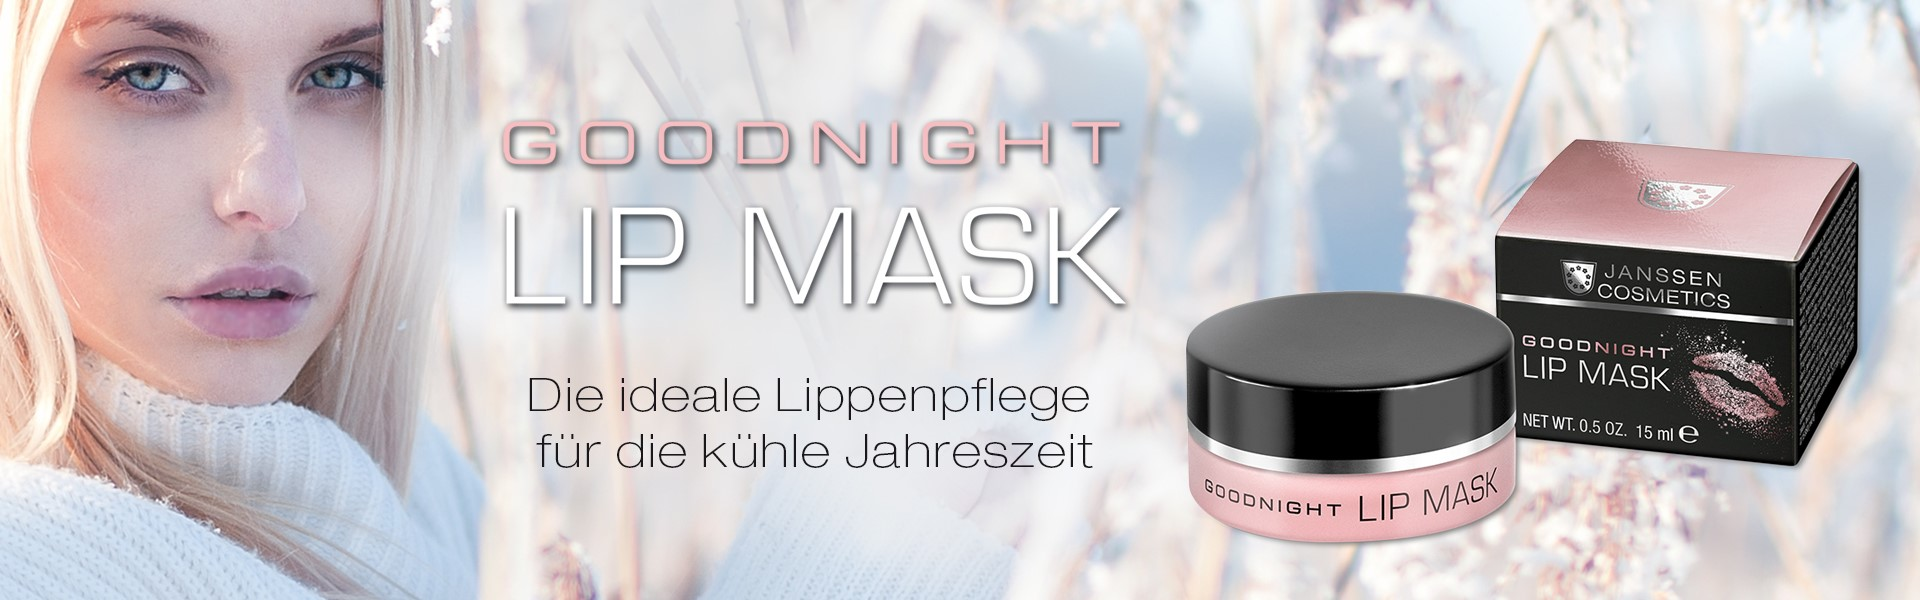 Goodnight Lip Mask